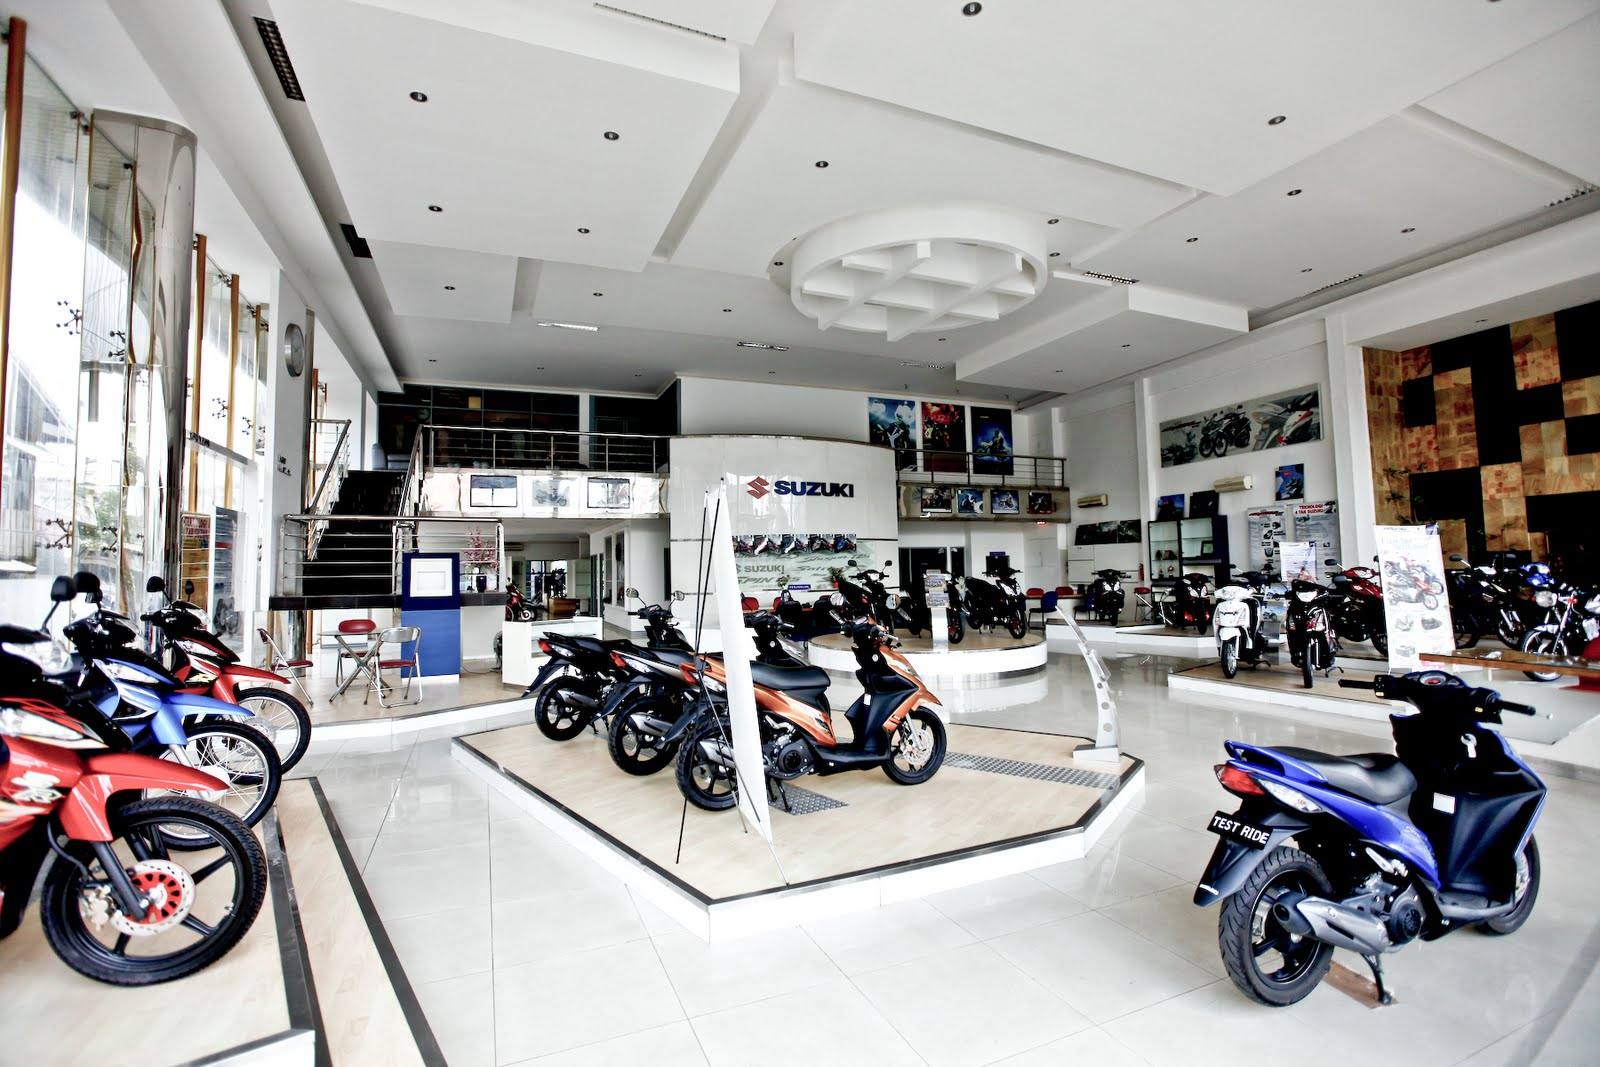 Suzuki Motorcycles - Motorcycle USA